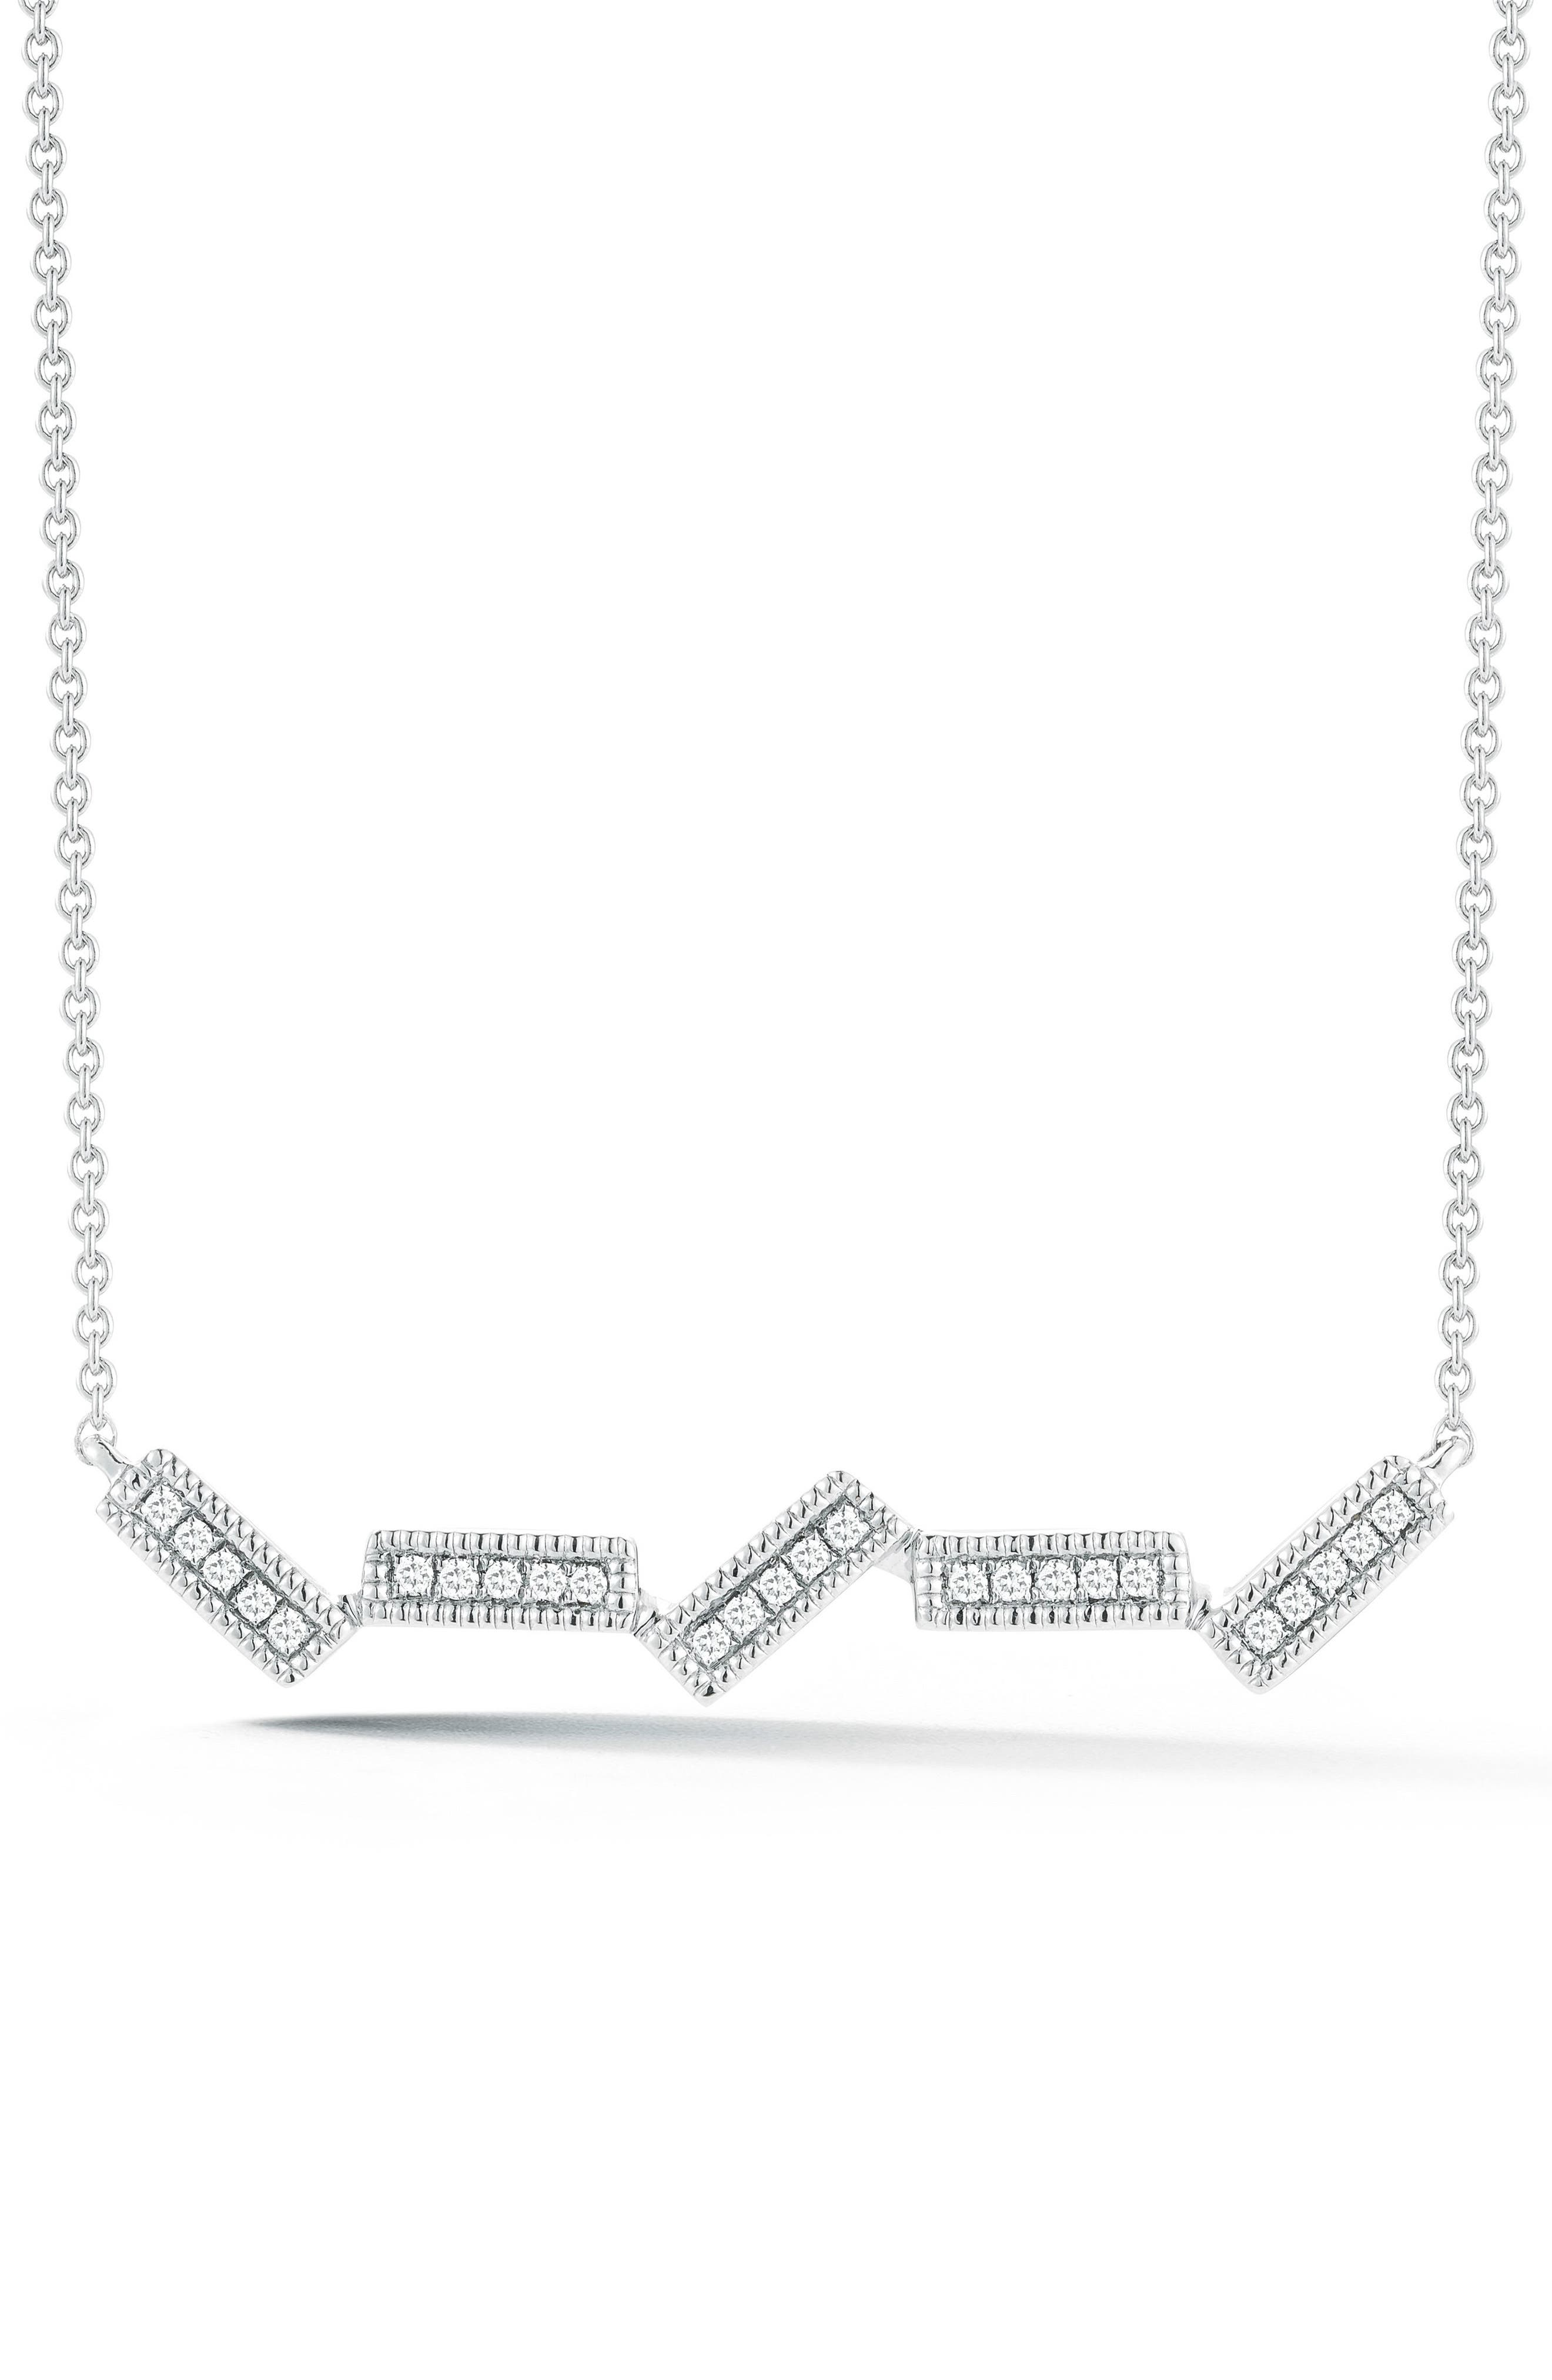 Alternate Image 1 Selected - Dana Rebecca Designs Sylvie Rose Five-Bar Diamond Pendant Necklace